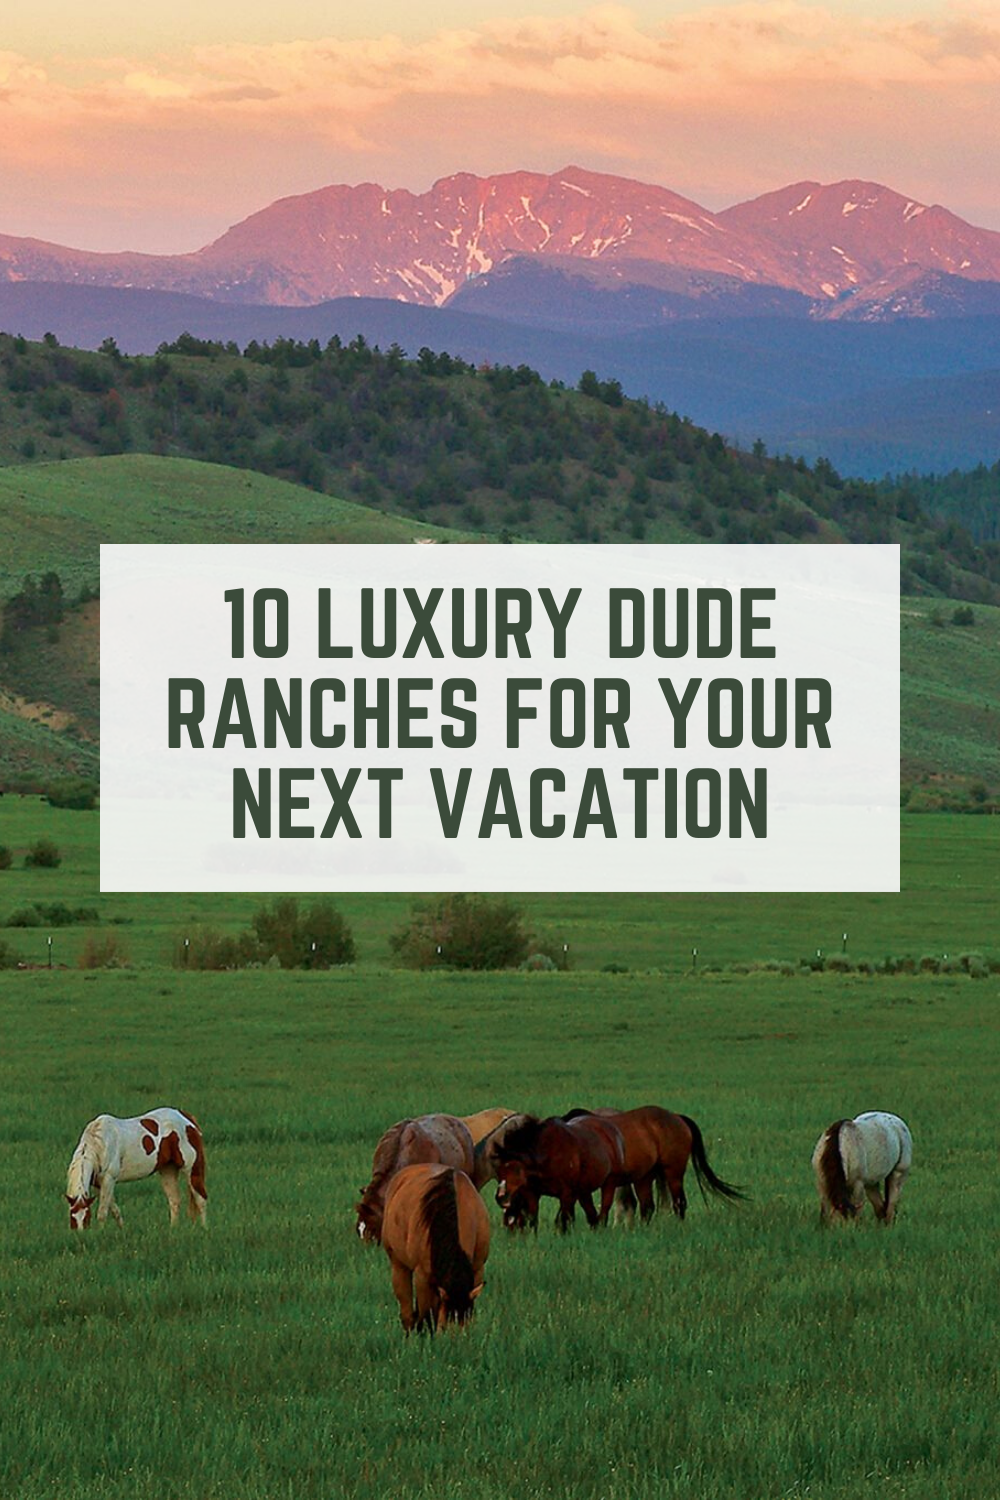 Luxury Dude Ranches